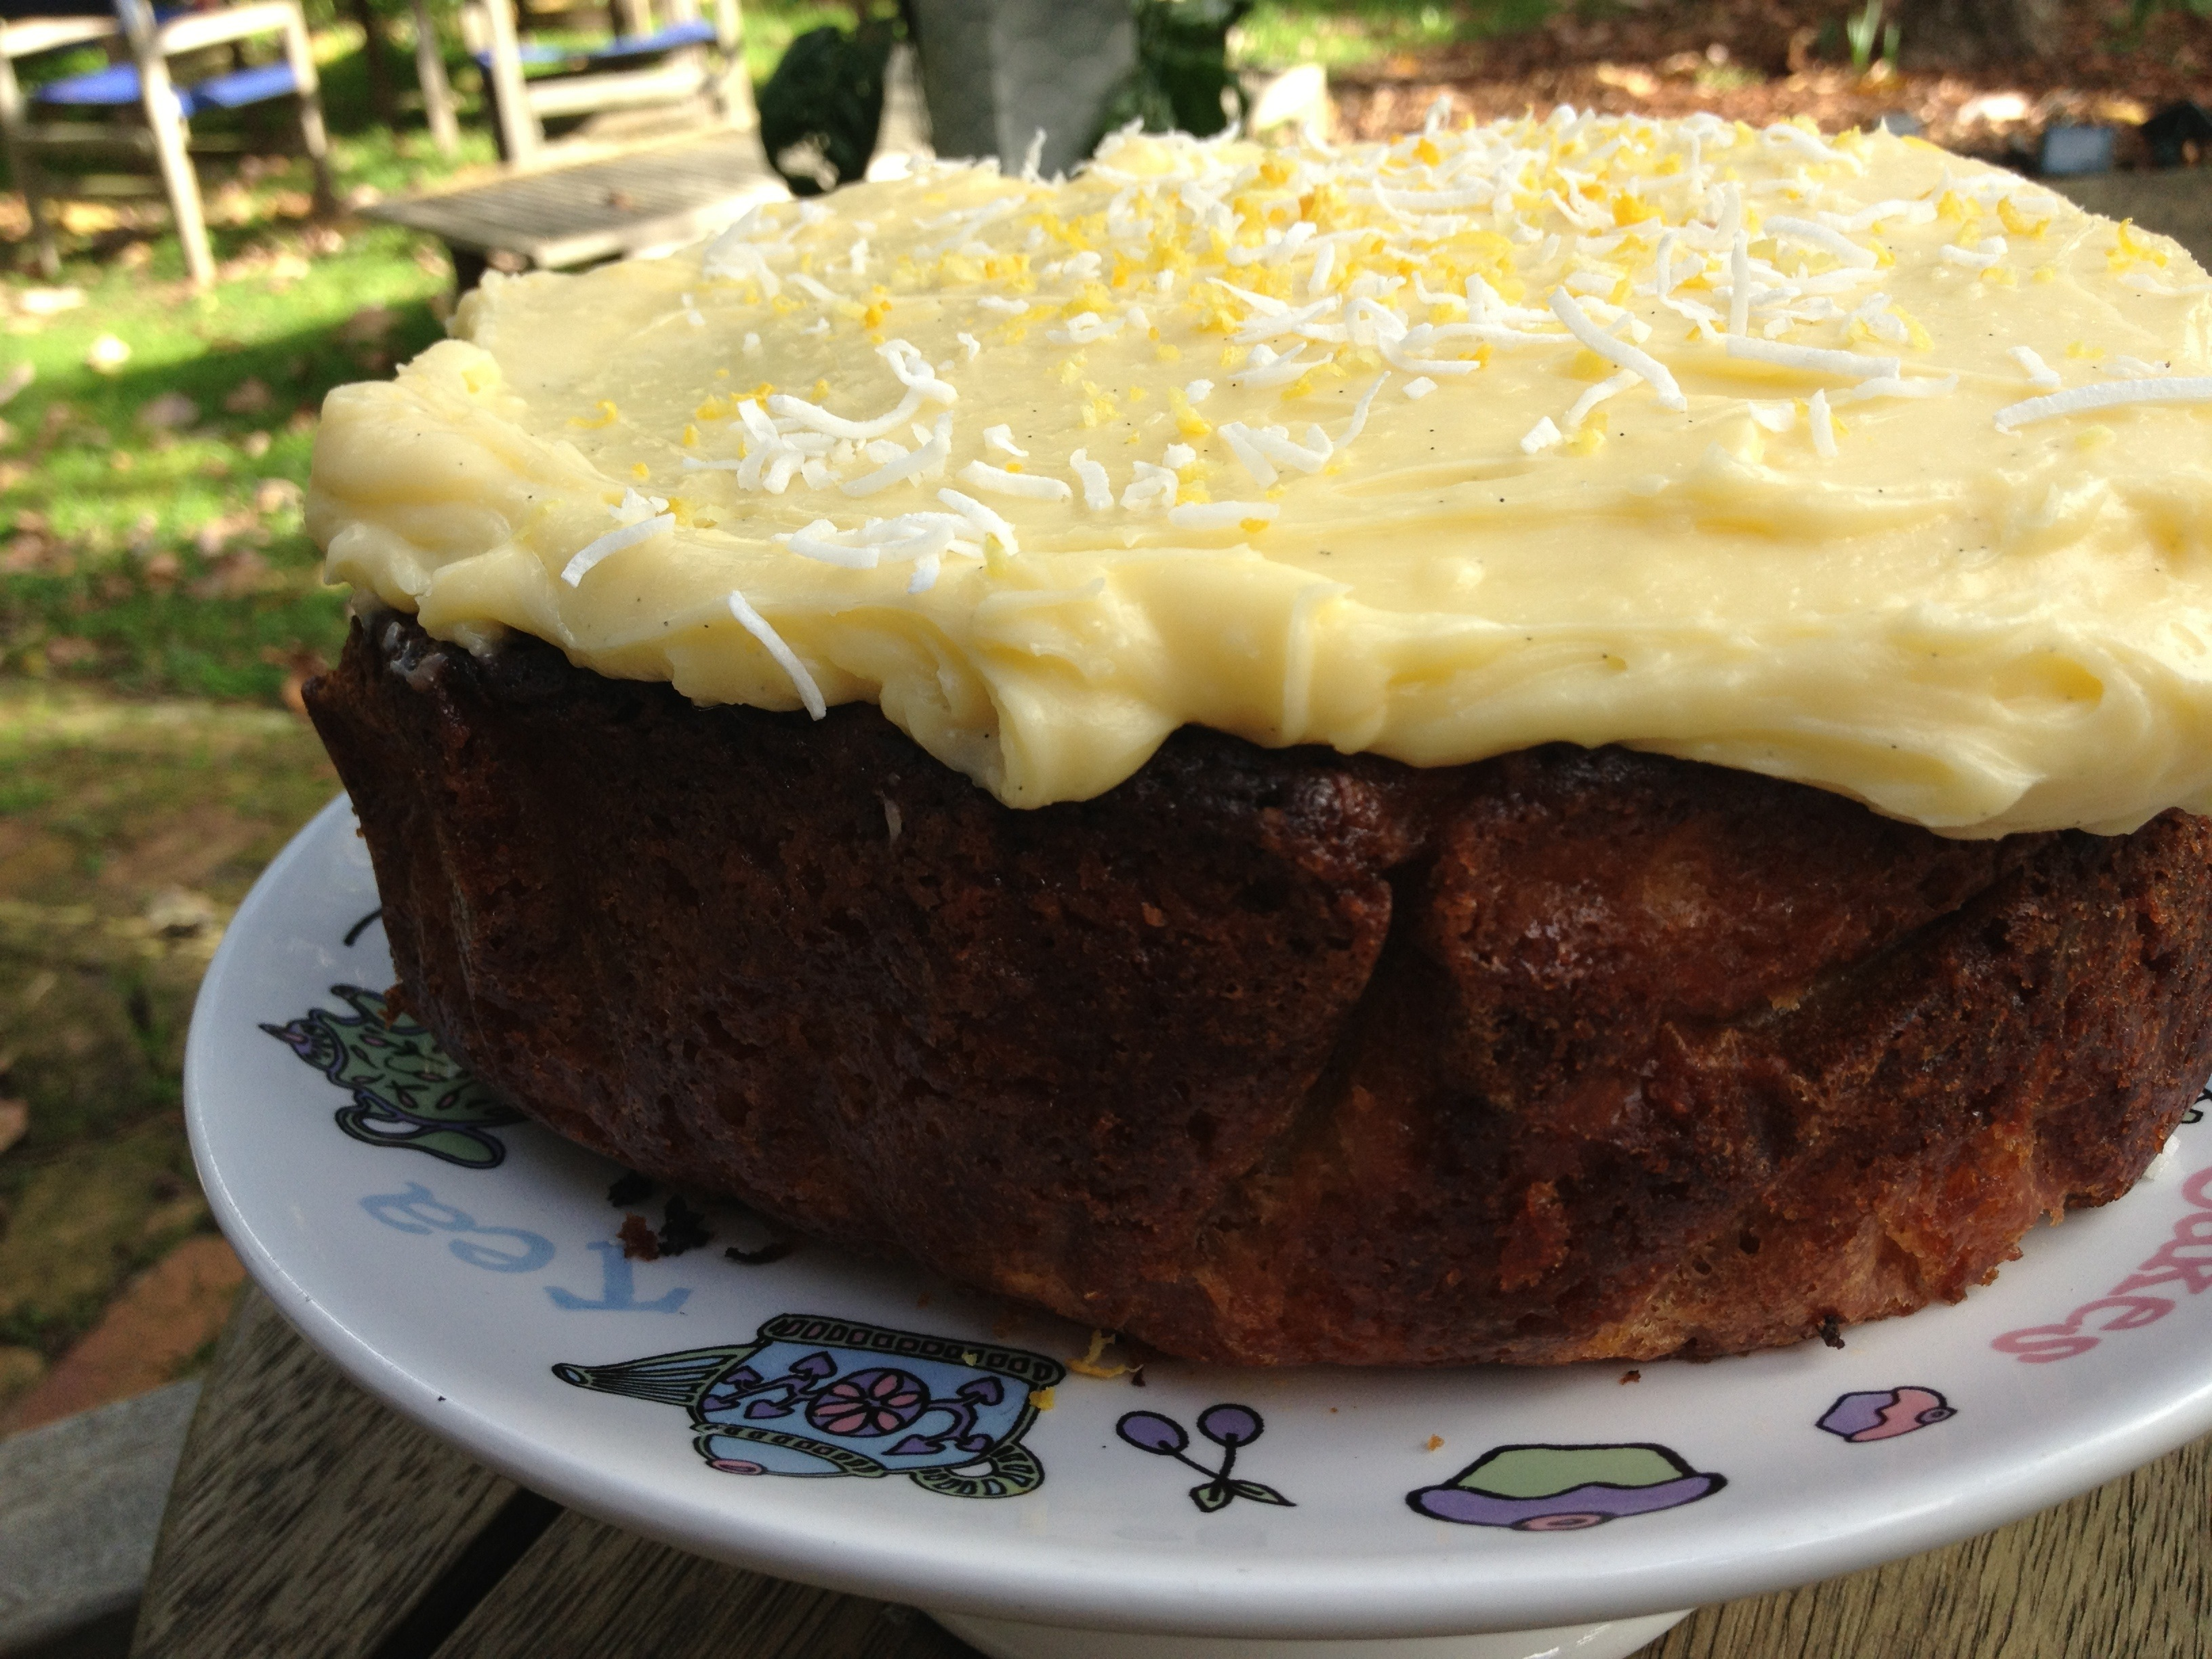 Pineapple and Coconut Carrot Cake (not vegan)